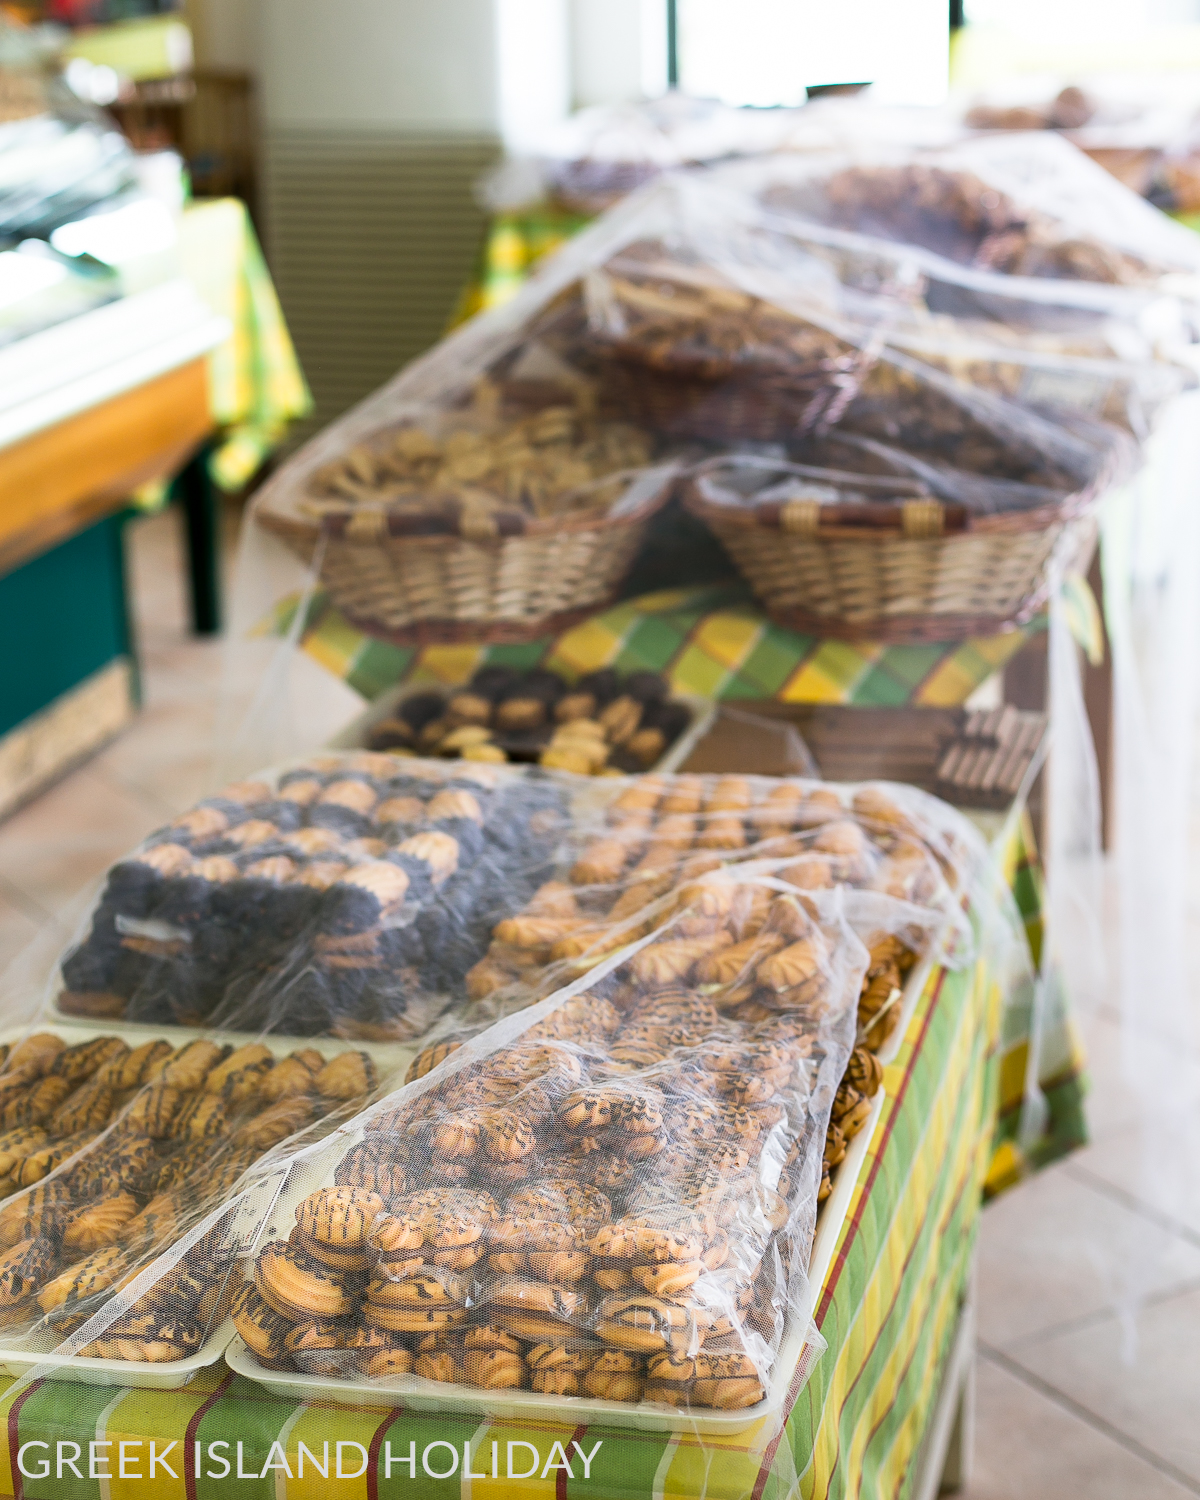 Greek Island Holiday | biscuits on offer at Mouratos Bakery on Milos